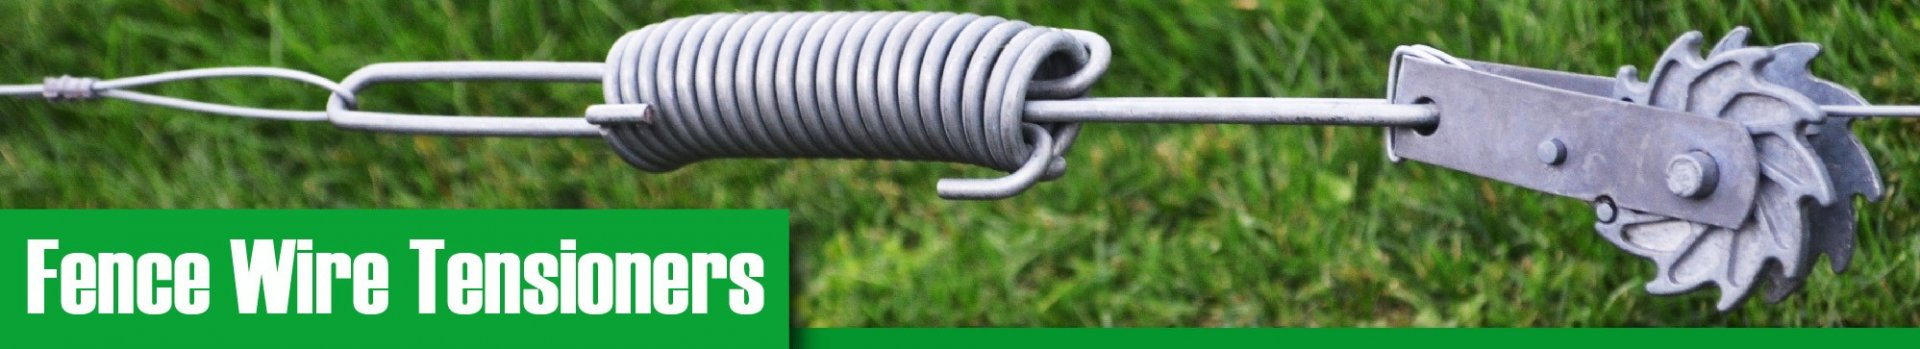 High Tensile Tensioners - POWERFIELDS - High Quality Electric Fence